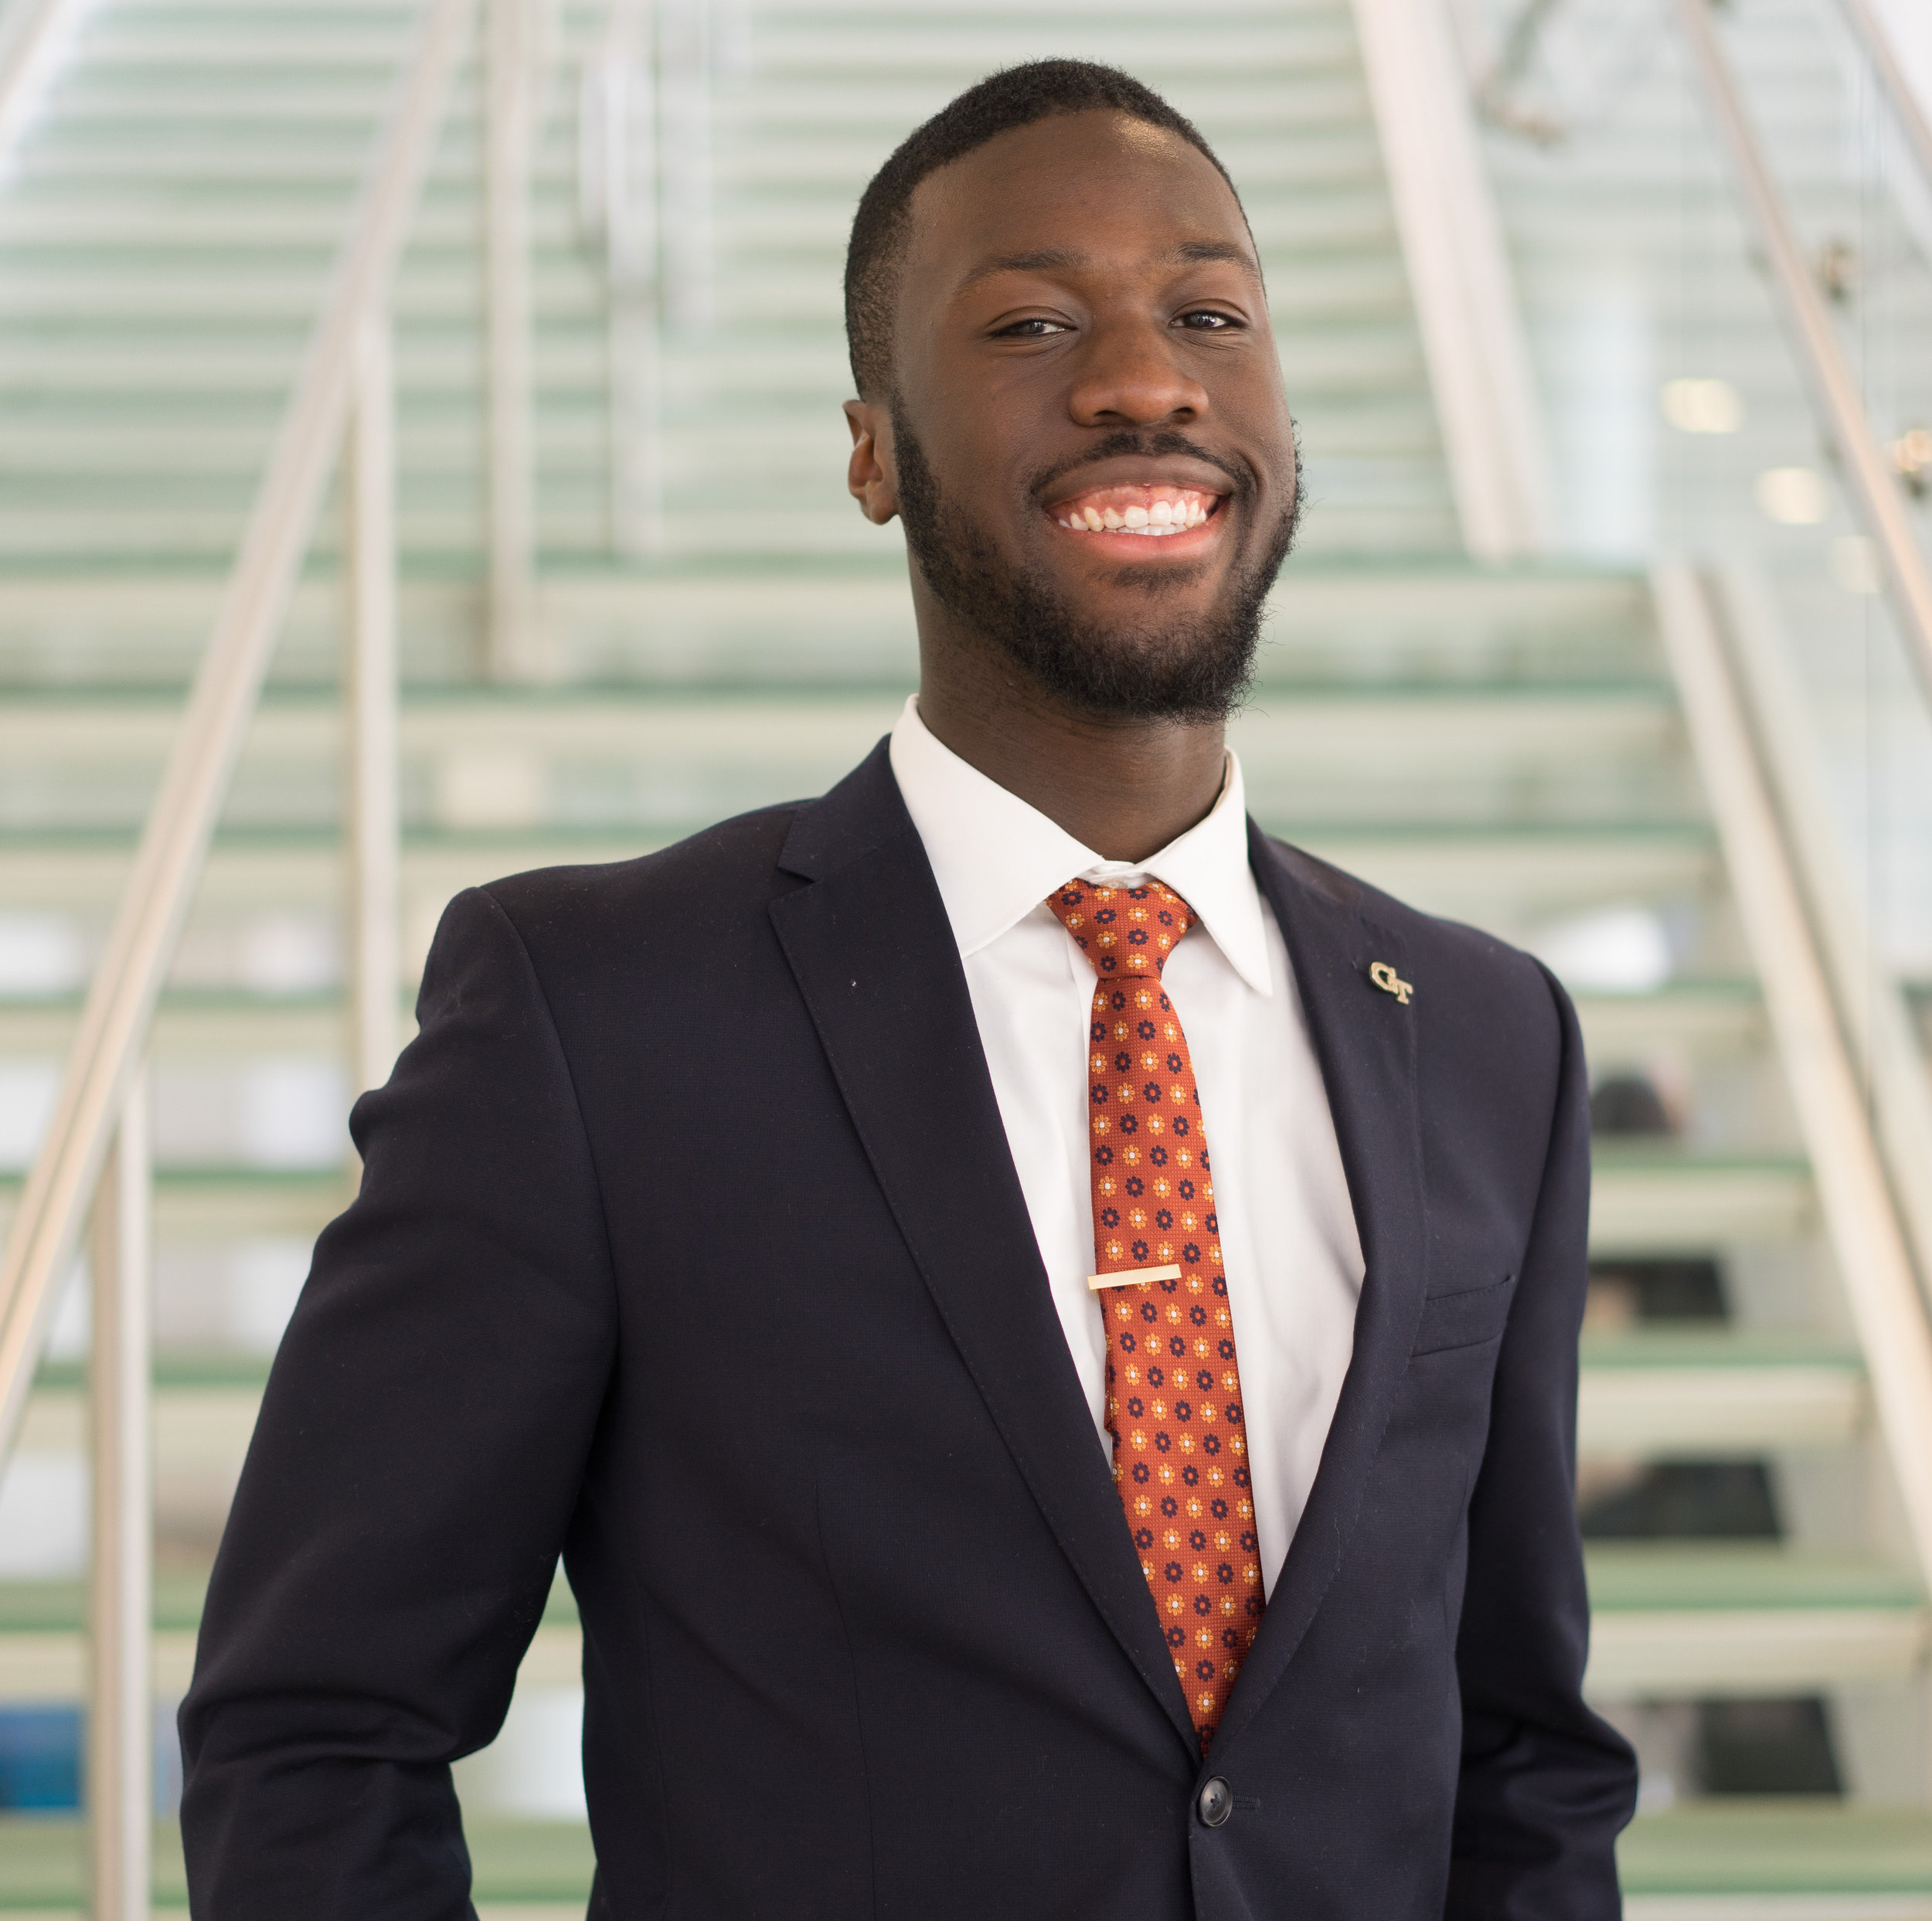 Wama G  betibouo, Engagement Lead   Graduate of the Georgia Institute of Technology where he received a B.S. in Mechanical Engineering with a minor in Technology & Management. Wama is currently working as an Operations Engineer for Caterpillar Inc. in Peoria, IL. He is also a freelance graphic designer and cryptocurrency enthusiast.